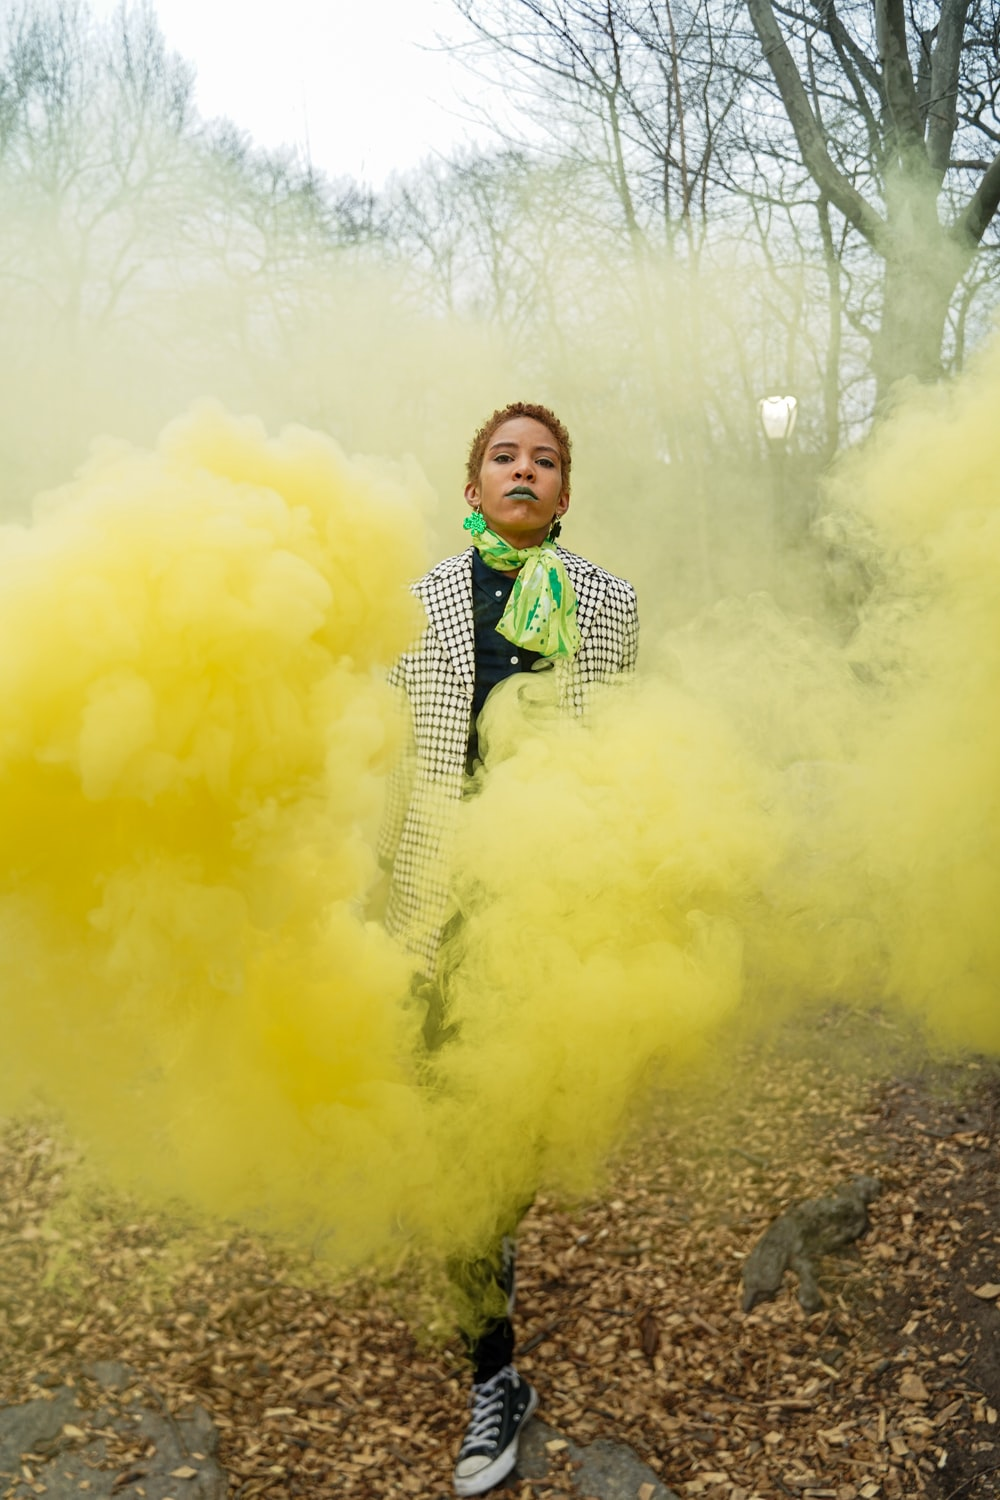 boy in black and white suit standing on ground with yellow smoke